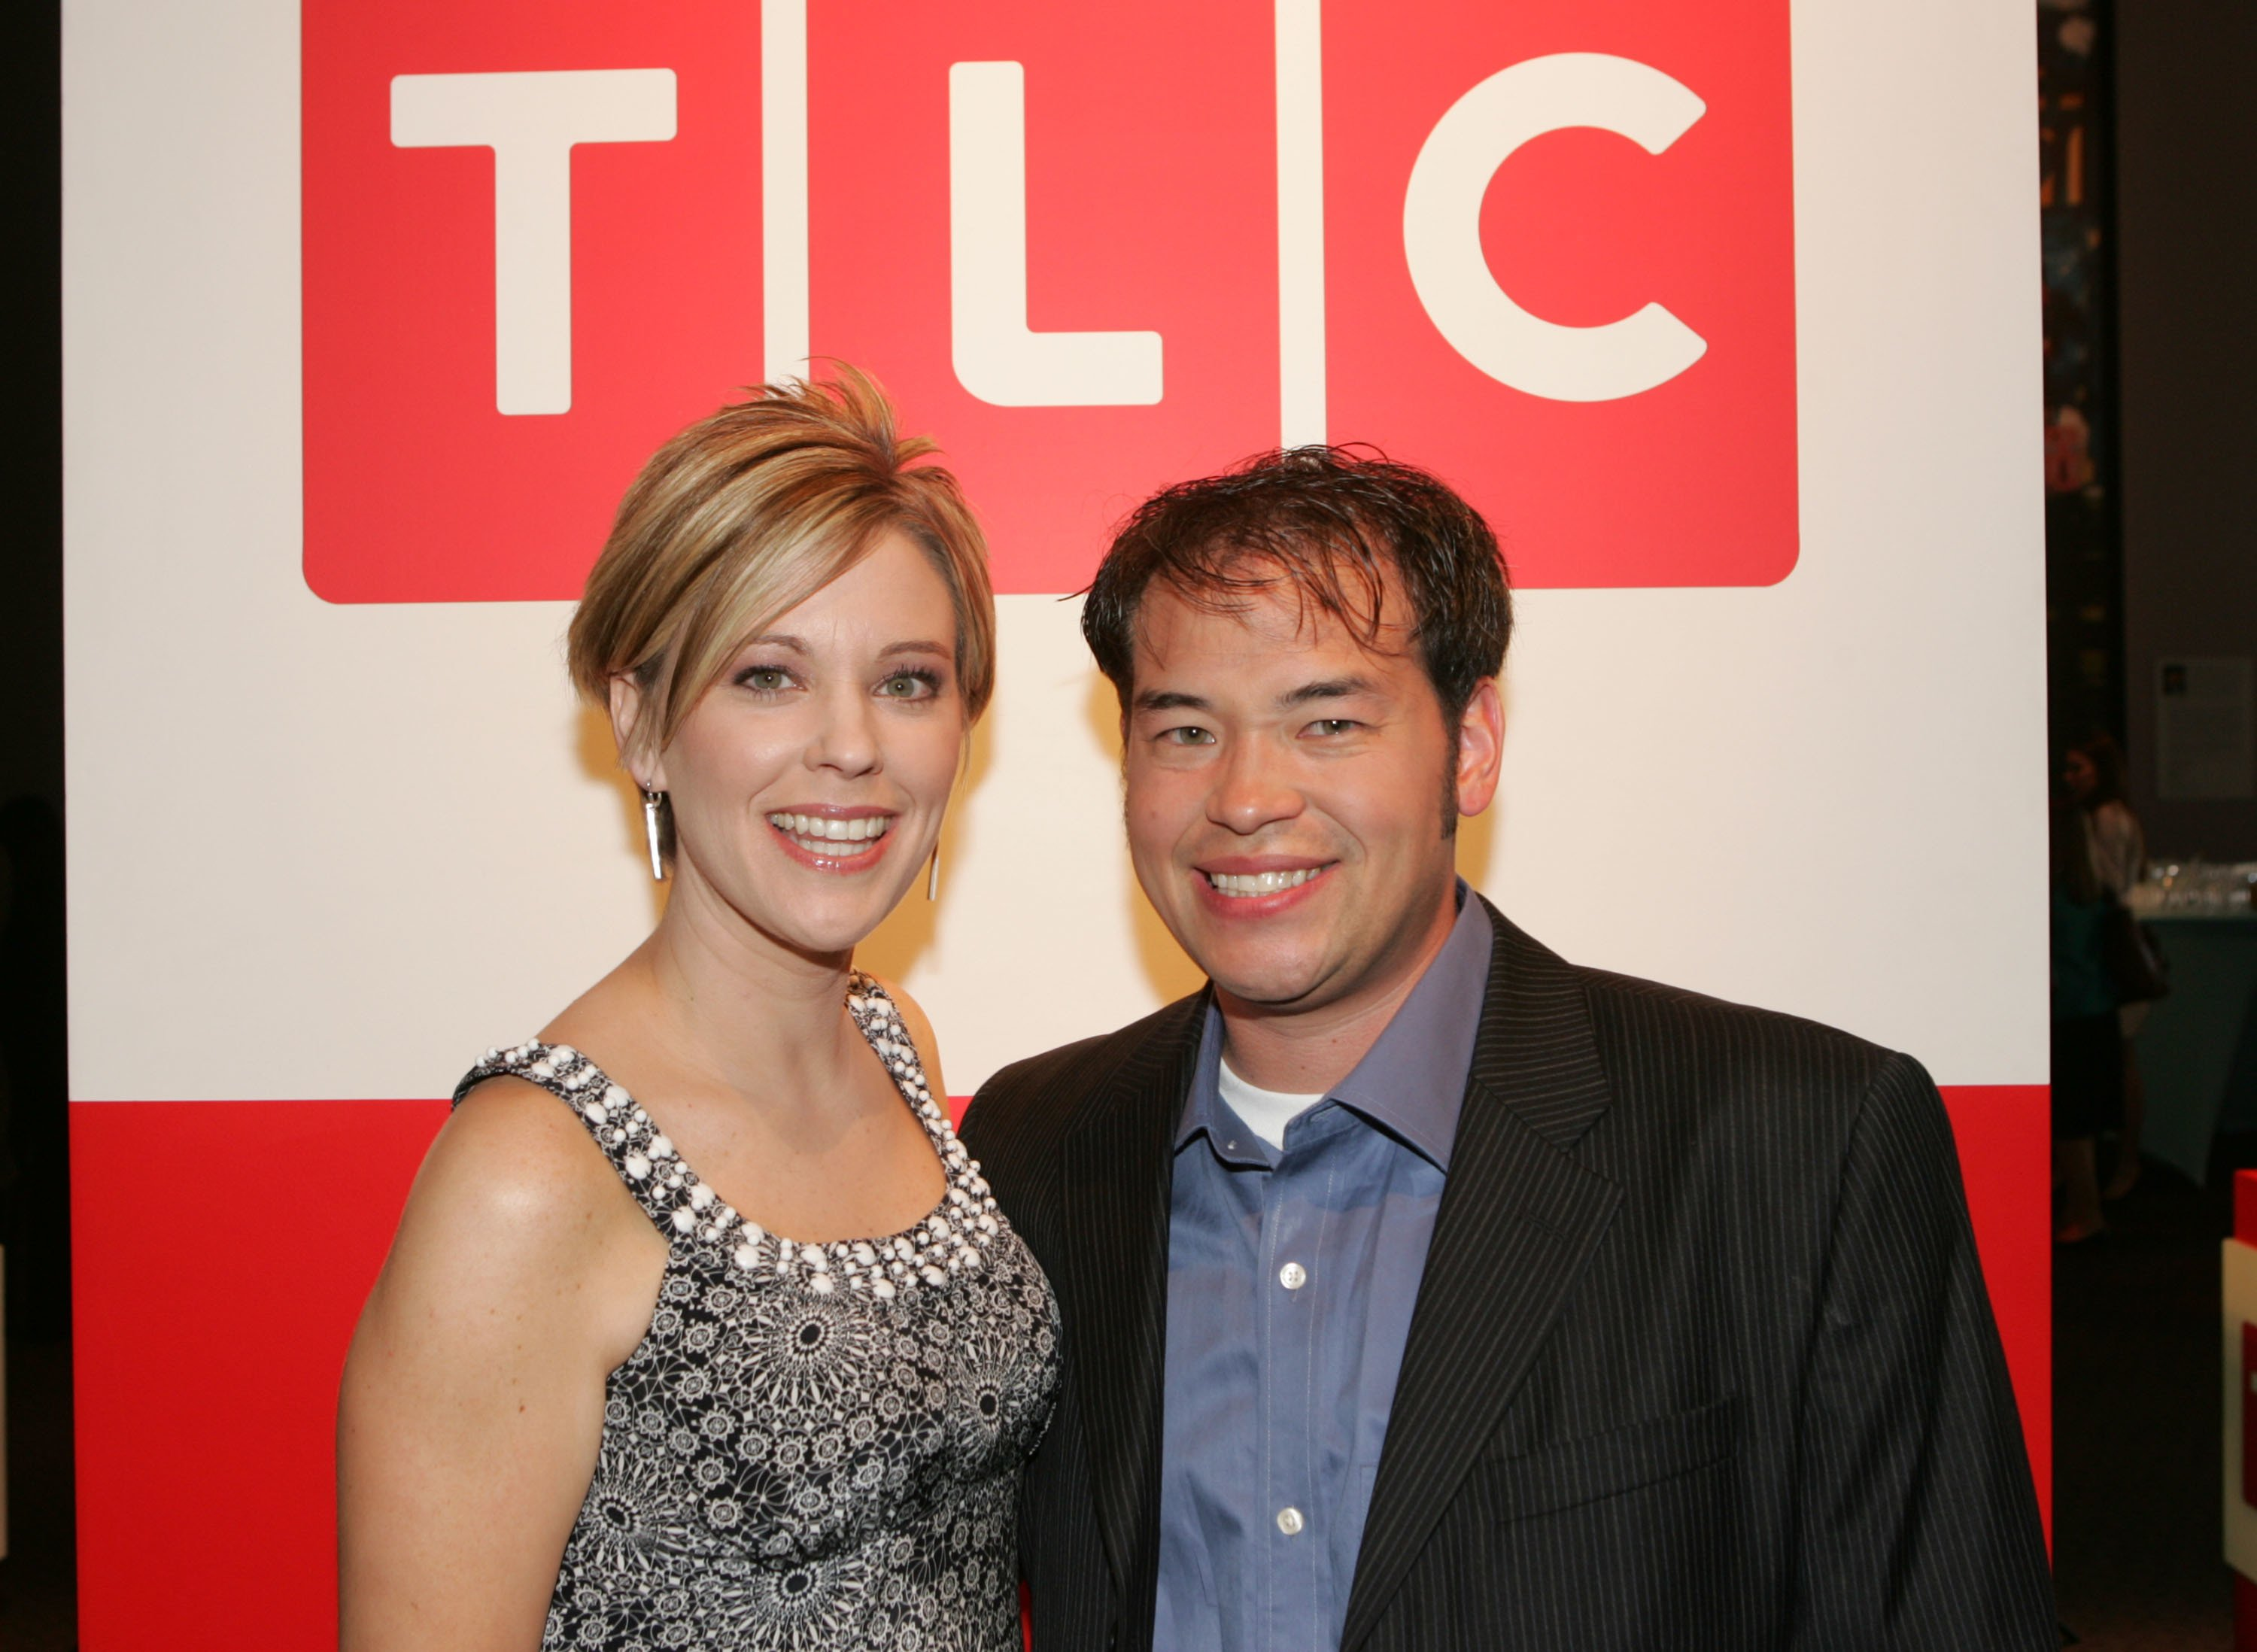 John and Kate Gosselin attend the Discovery Upfront Presentation NY - Talent Images at the Frederick P. Rose Hall on April 23, 2008. | Source: Getty Images